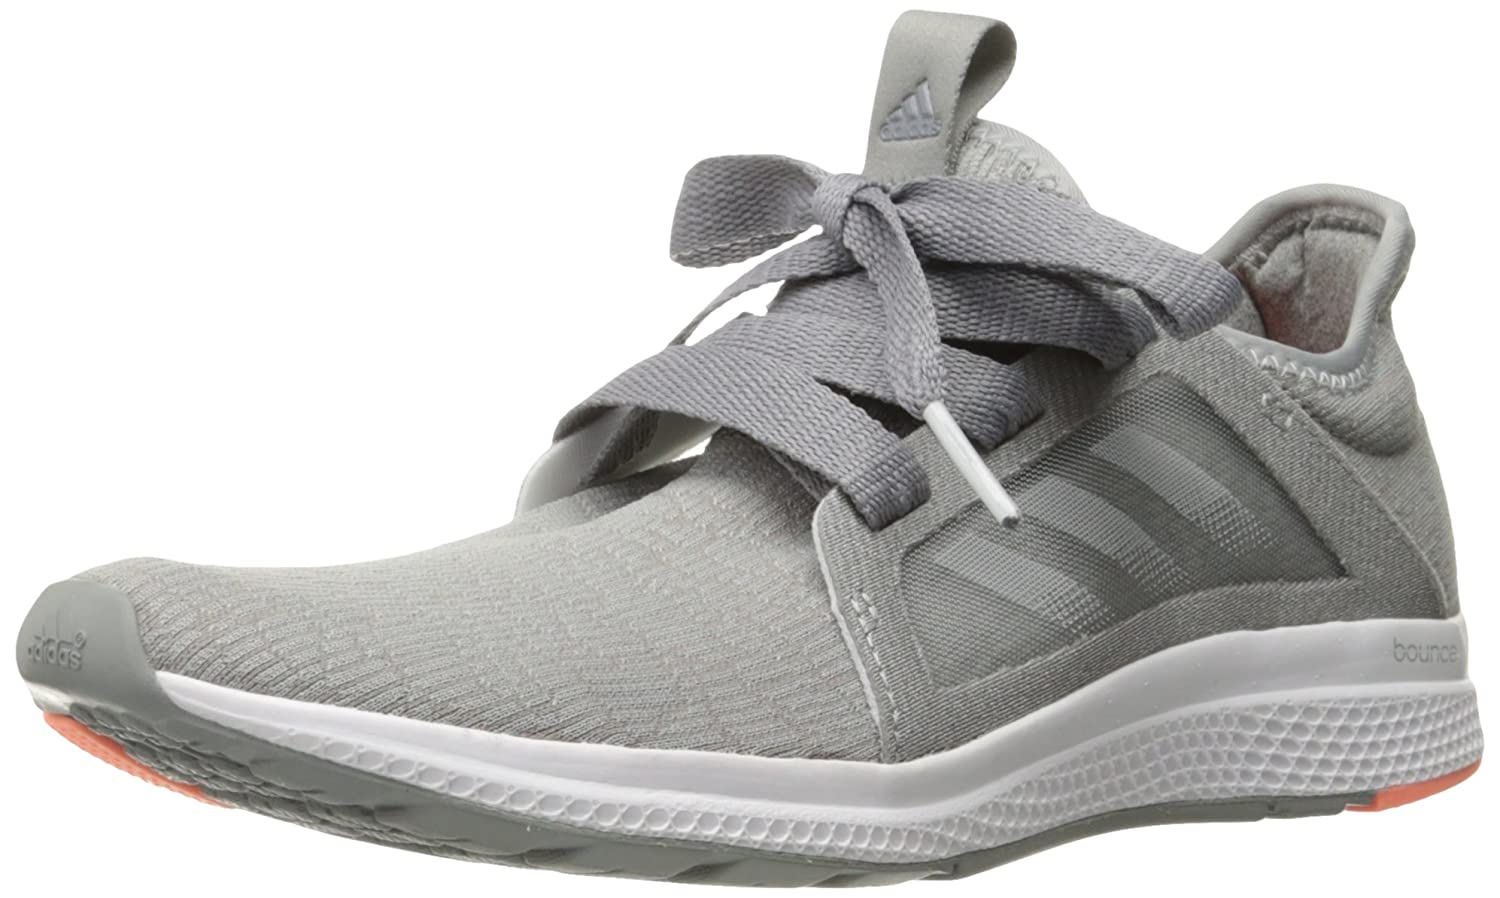 adidas Women's Edge Lux W Running Shoe B01A689R7M 10.5 B(M) US|Grey-crystal White-sun Glow